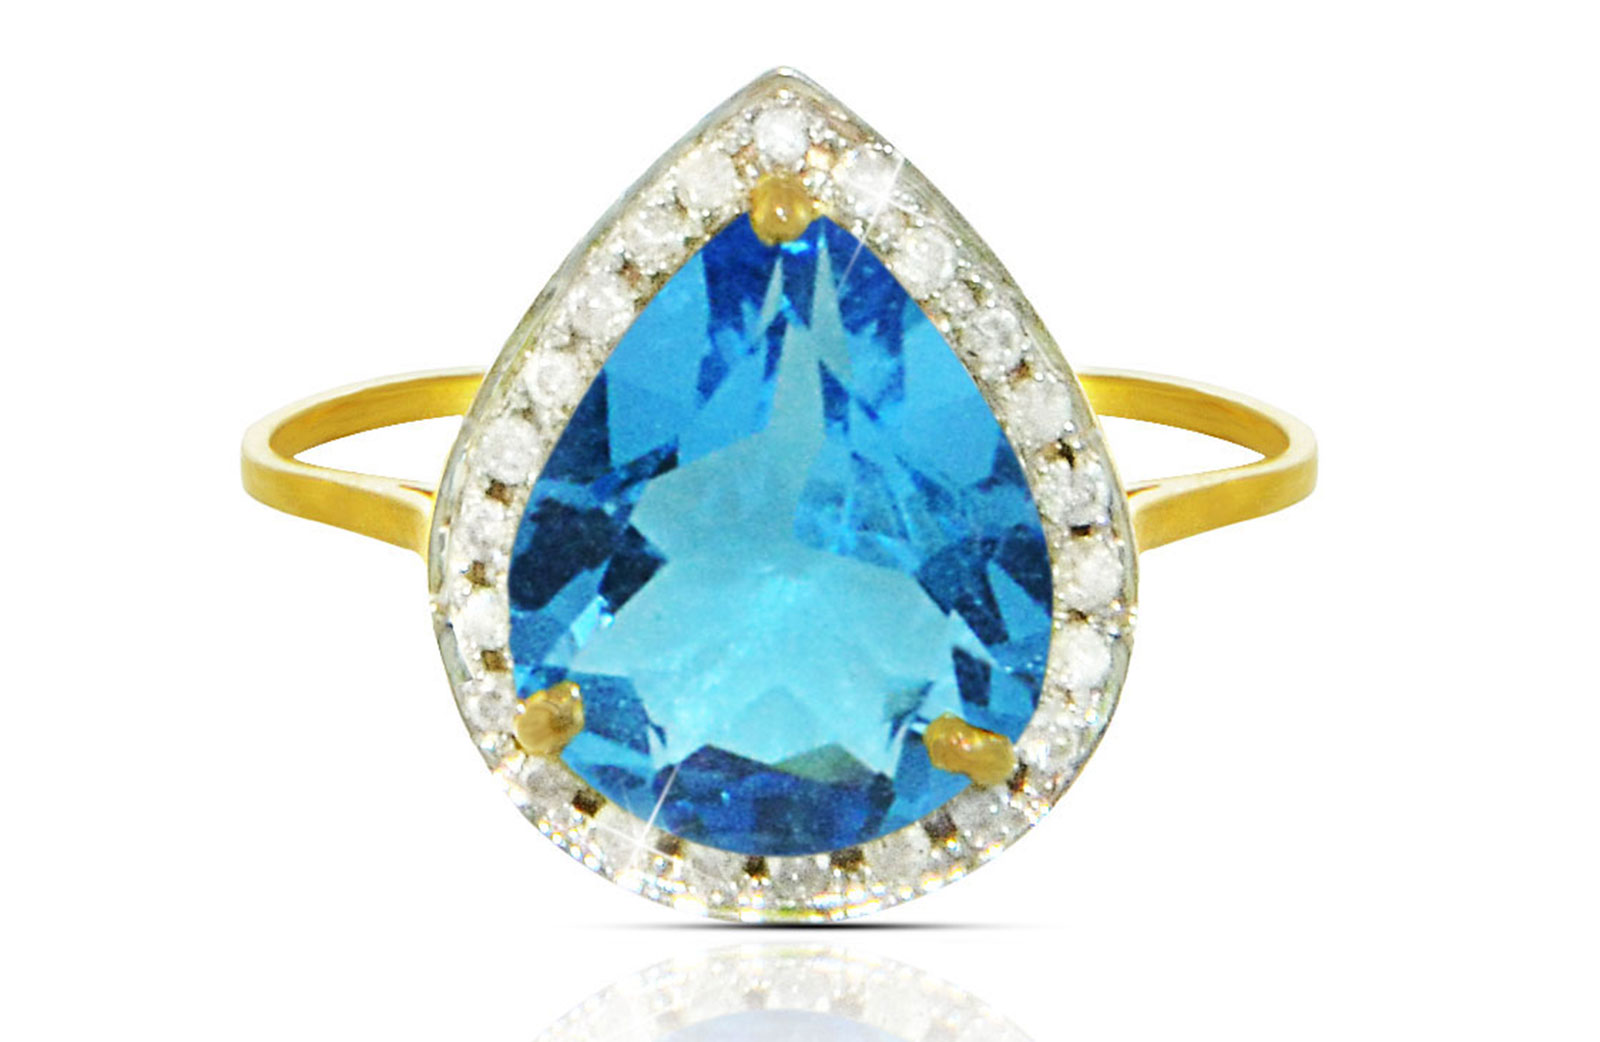 Vera Perla 18k  Gold 10mm Genuine Drop   Cut Swiss Blue Topaz 0.12Ct Genuine Diamonds Ring -SIZE 6.5 US